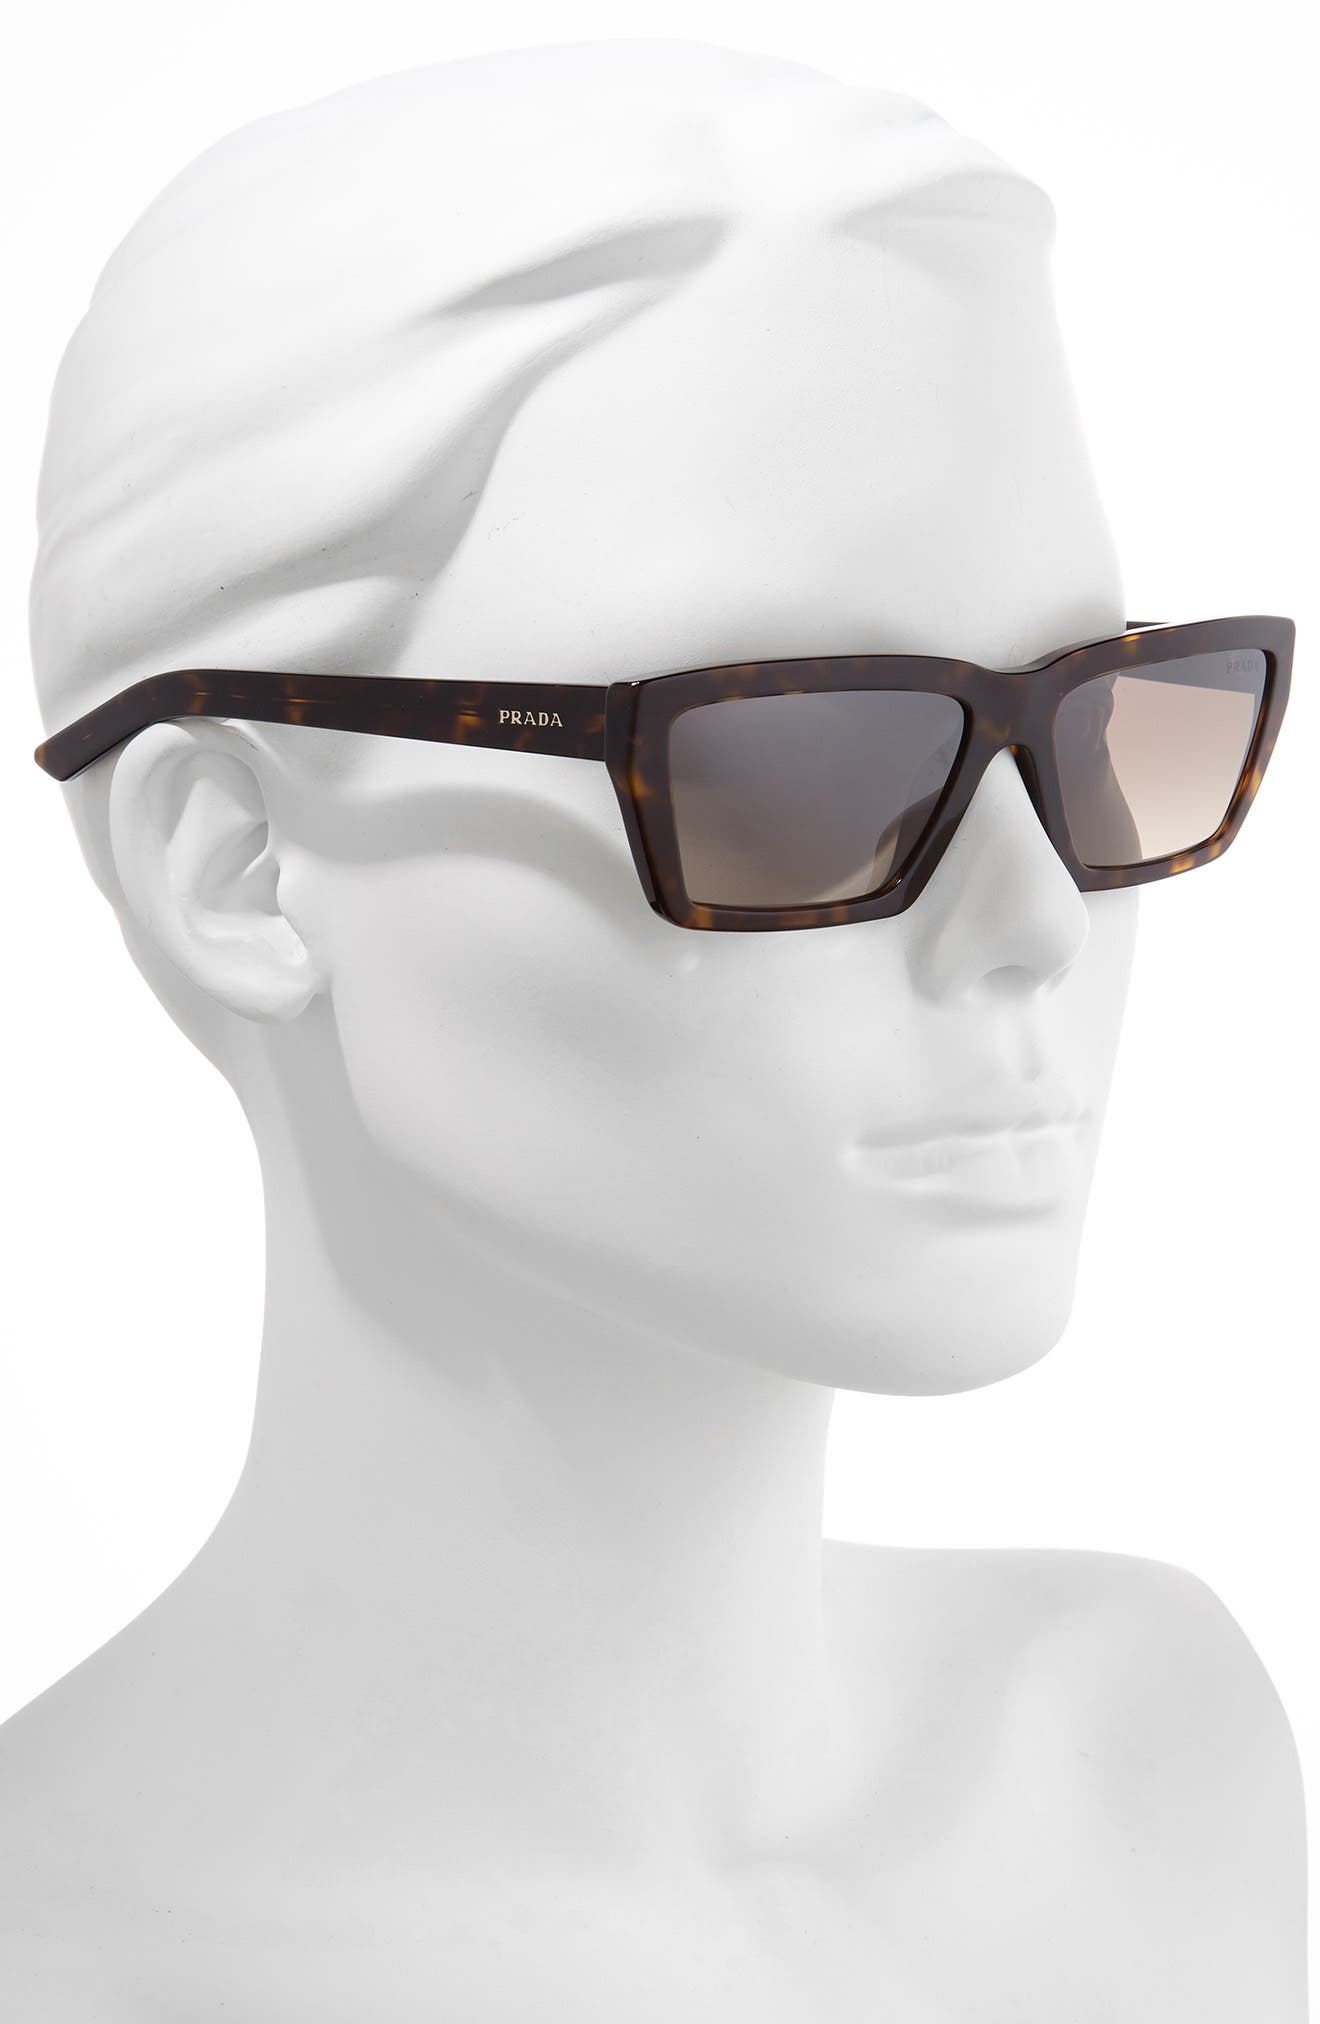 PRADA,                             Millennial 57mm Rectangle Sunglasses,                             Alternate thumbnail 2, color,                             HAVANA